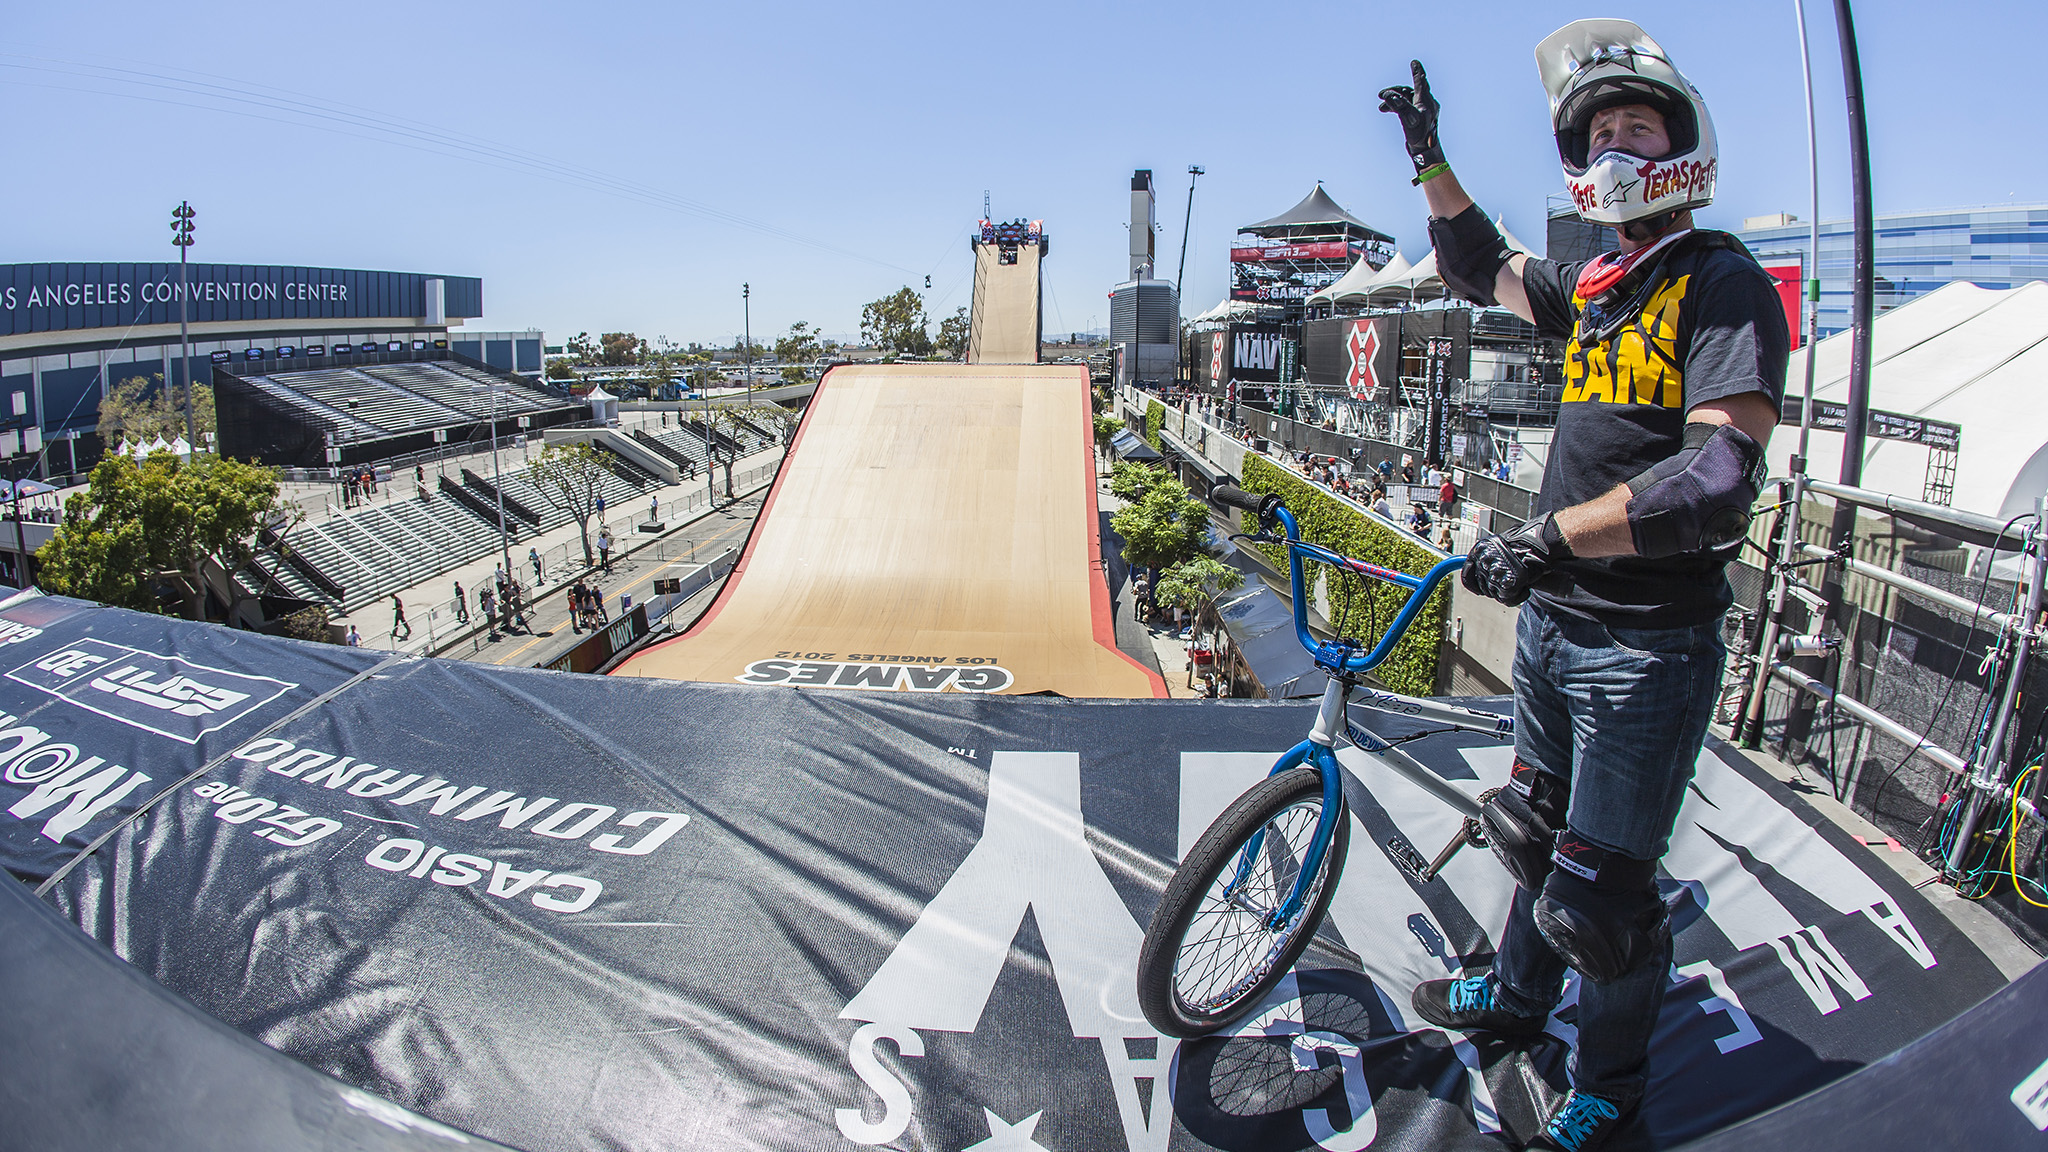 X Games BMX competitor Chad Kagy, seen in a Team Ream t-shirt at X Games, will will be among the athletes featured in a BMX demo on Sunday, March 2 for Team Ream Day at Penn State.